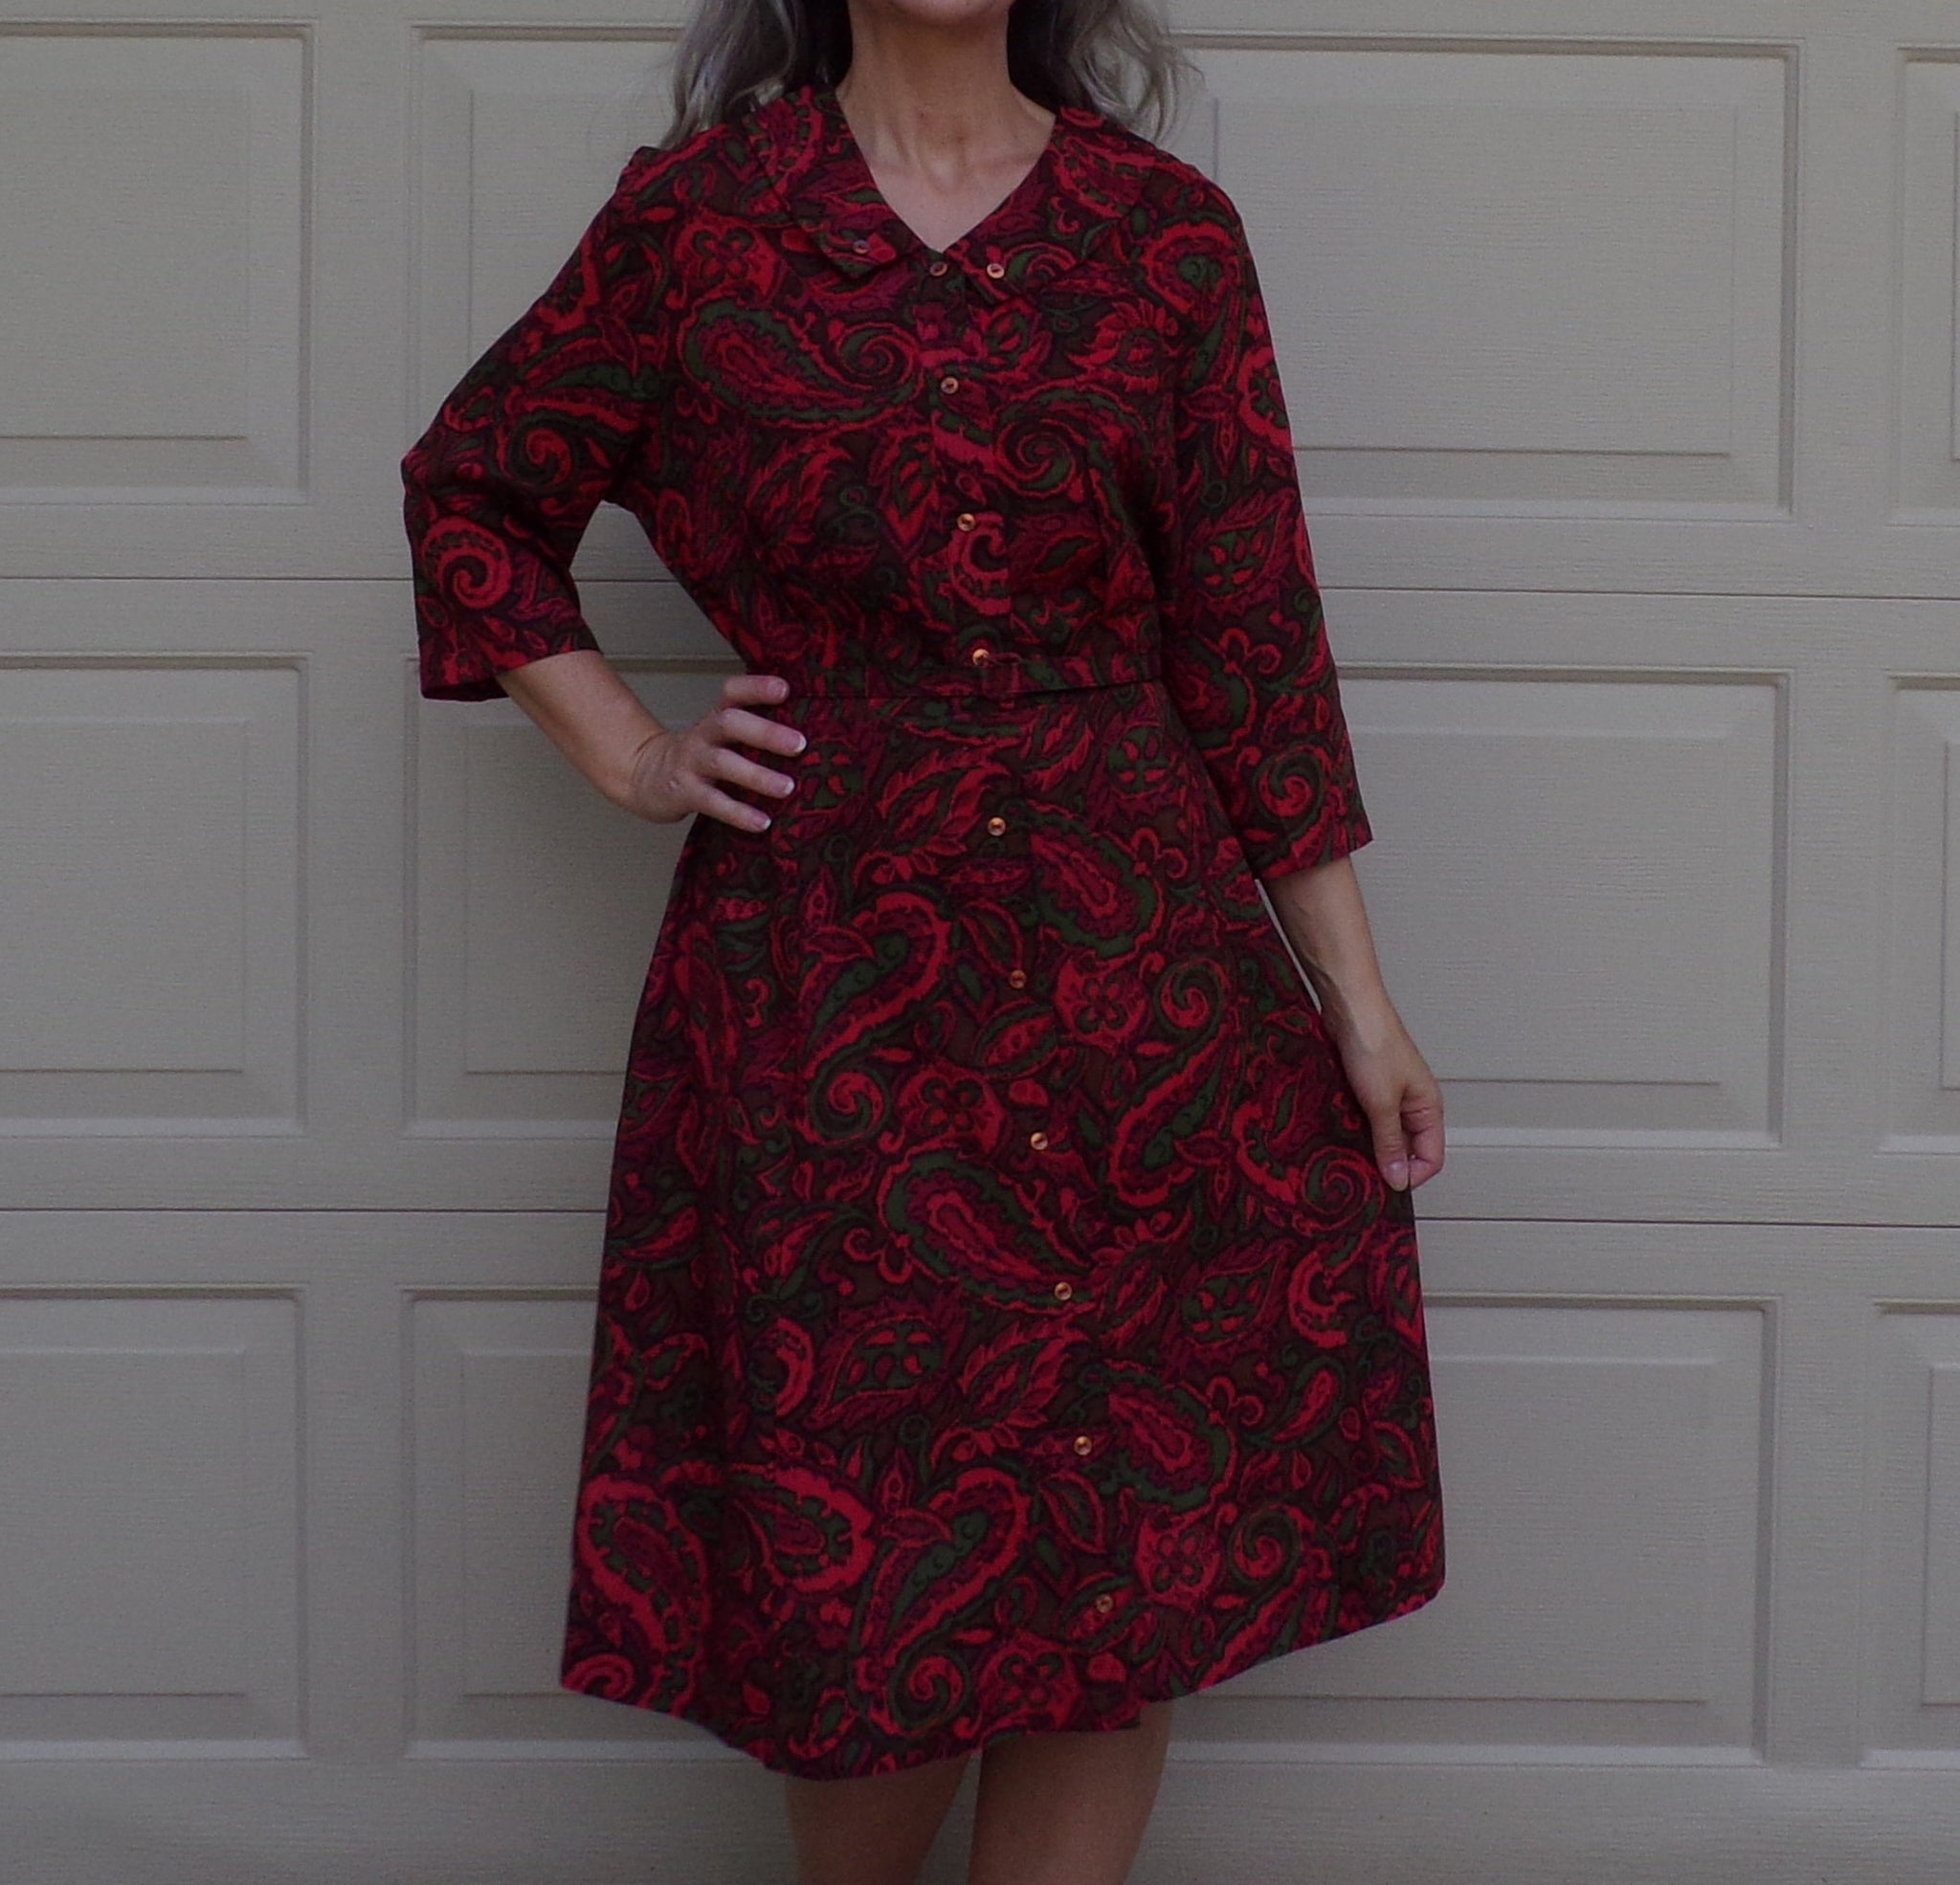 MIDCENTURY jeweltone BELTED DRESS volup 2X (F4)